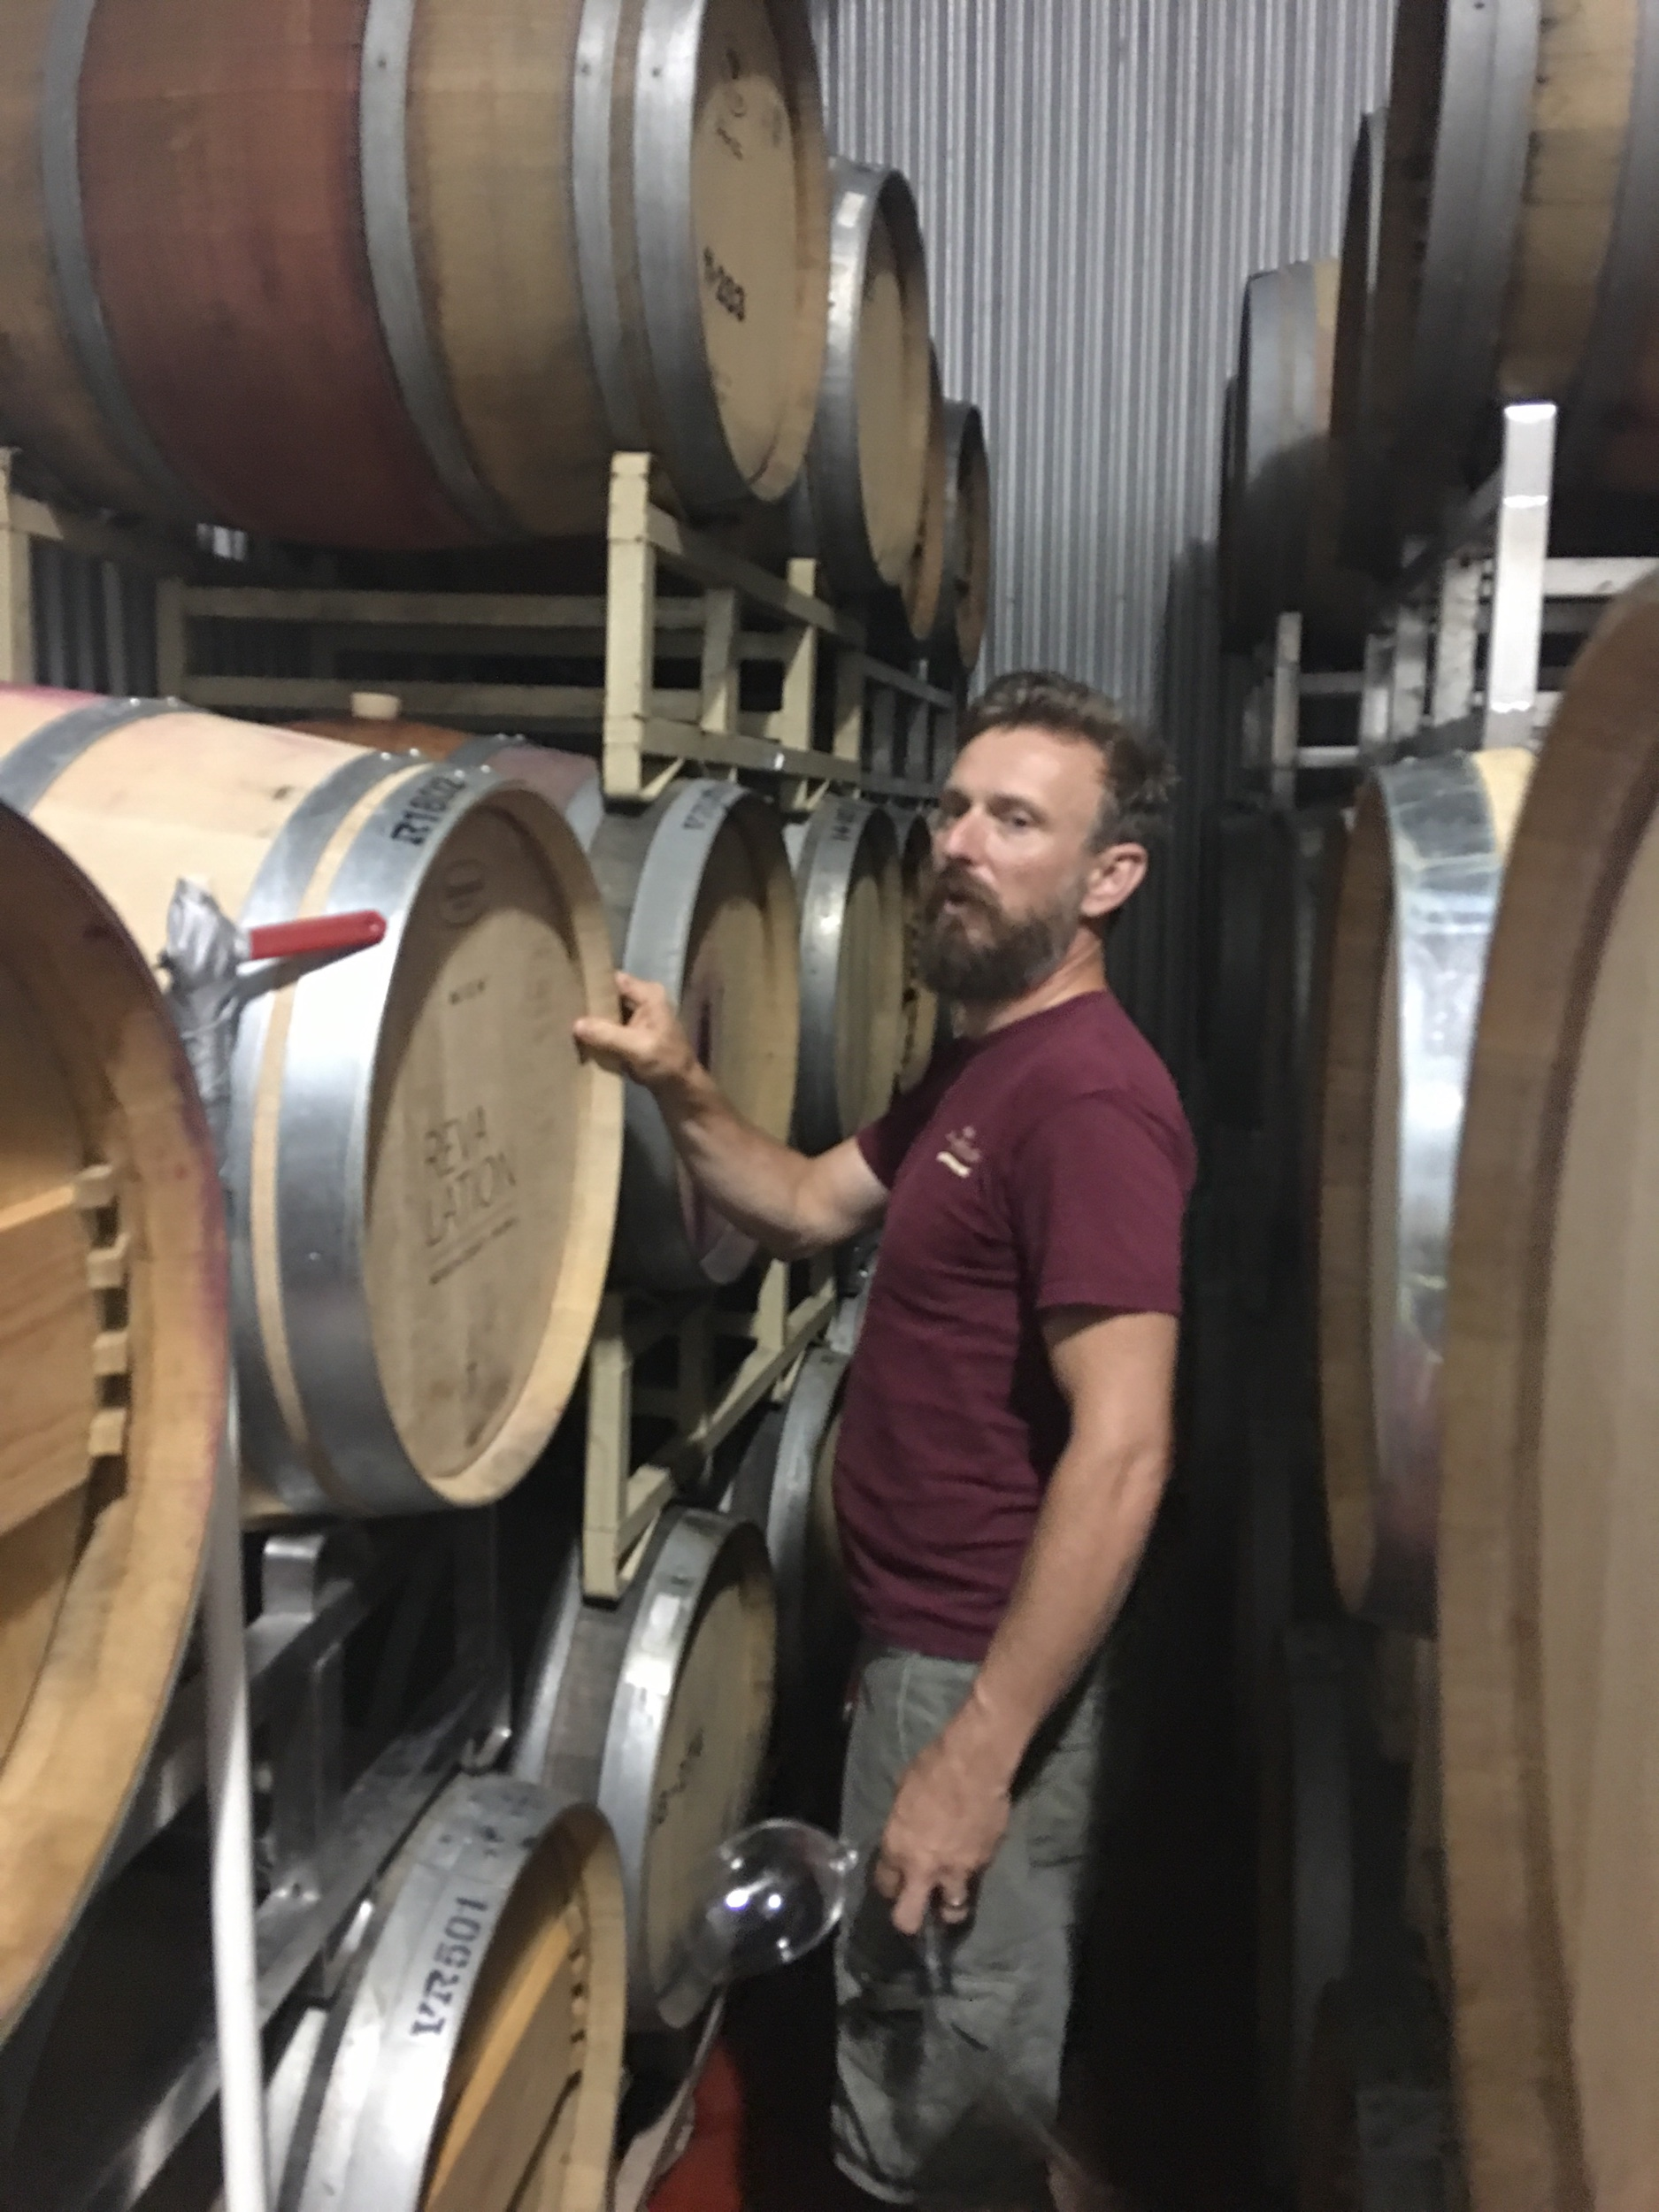 Winemaker Matthieu Finot locating the single barrel of Mount Alto Vineyards 2018 red amongst his sea of wine.